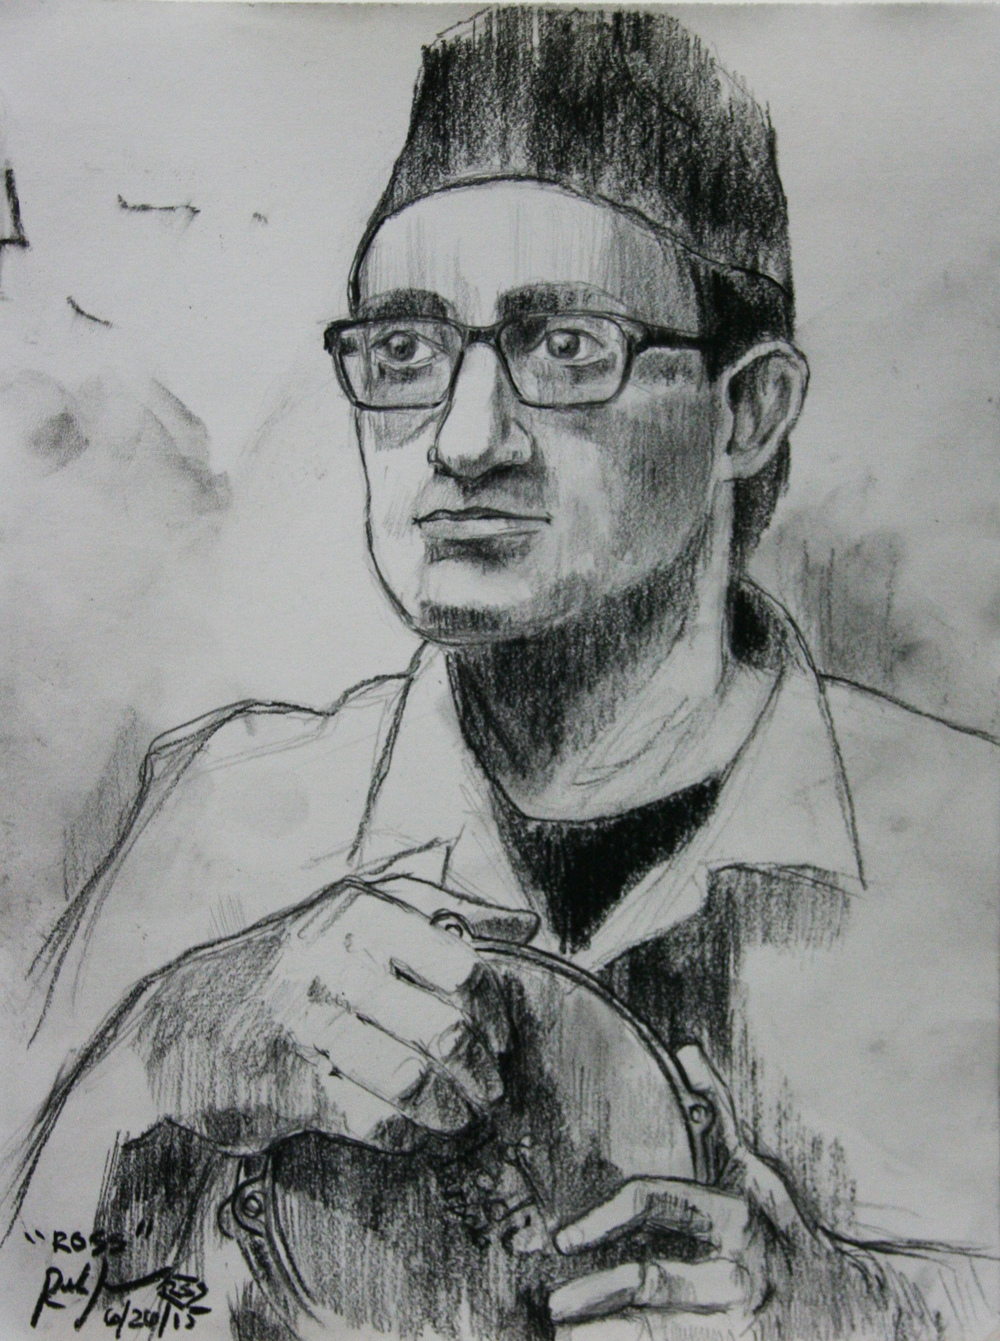 Ramesh Subramanium did this hour and a half drawing,